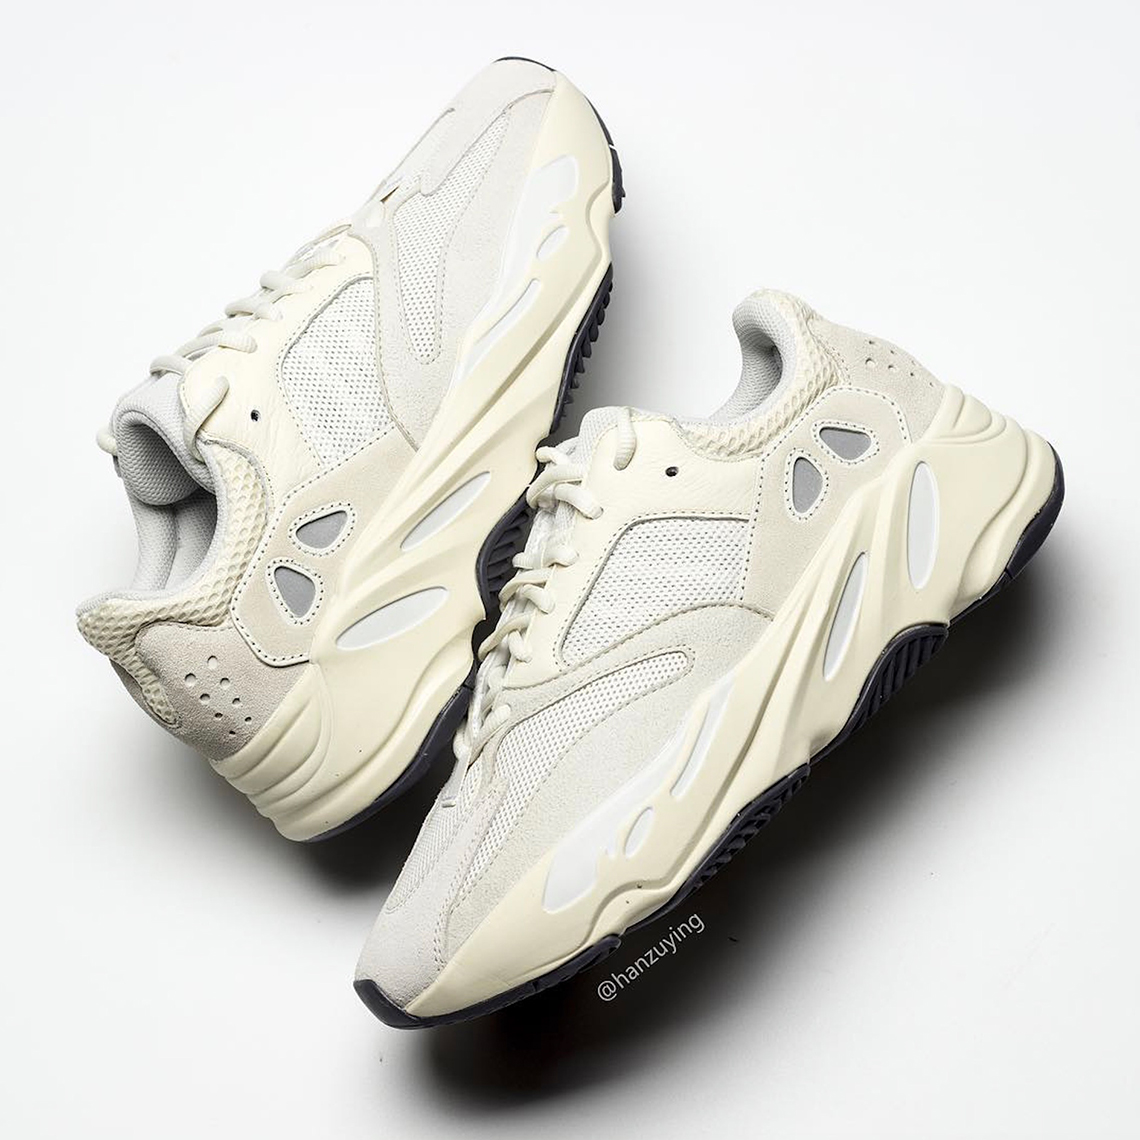 """87e3a7ef37000 Detailed Look At The adidas Yeezy Boost 700 """"Analog"""""""